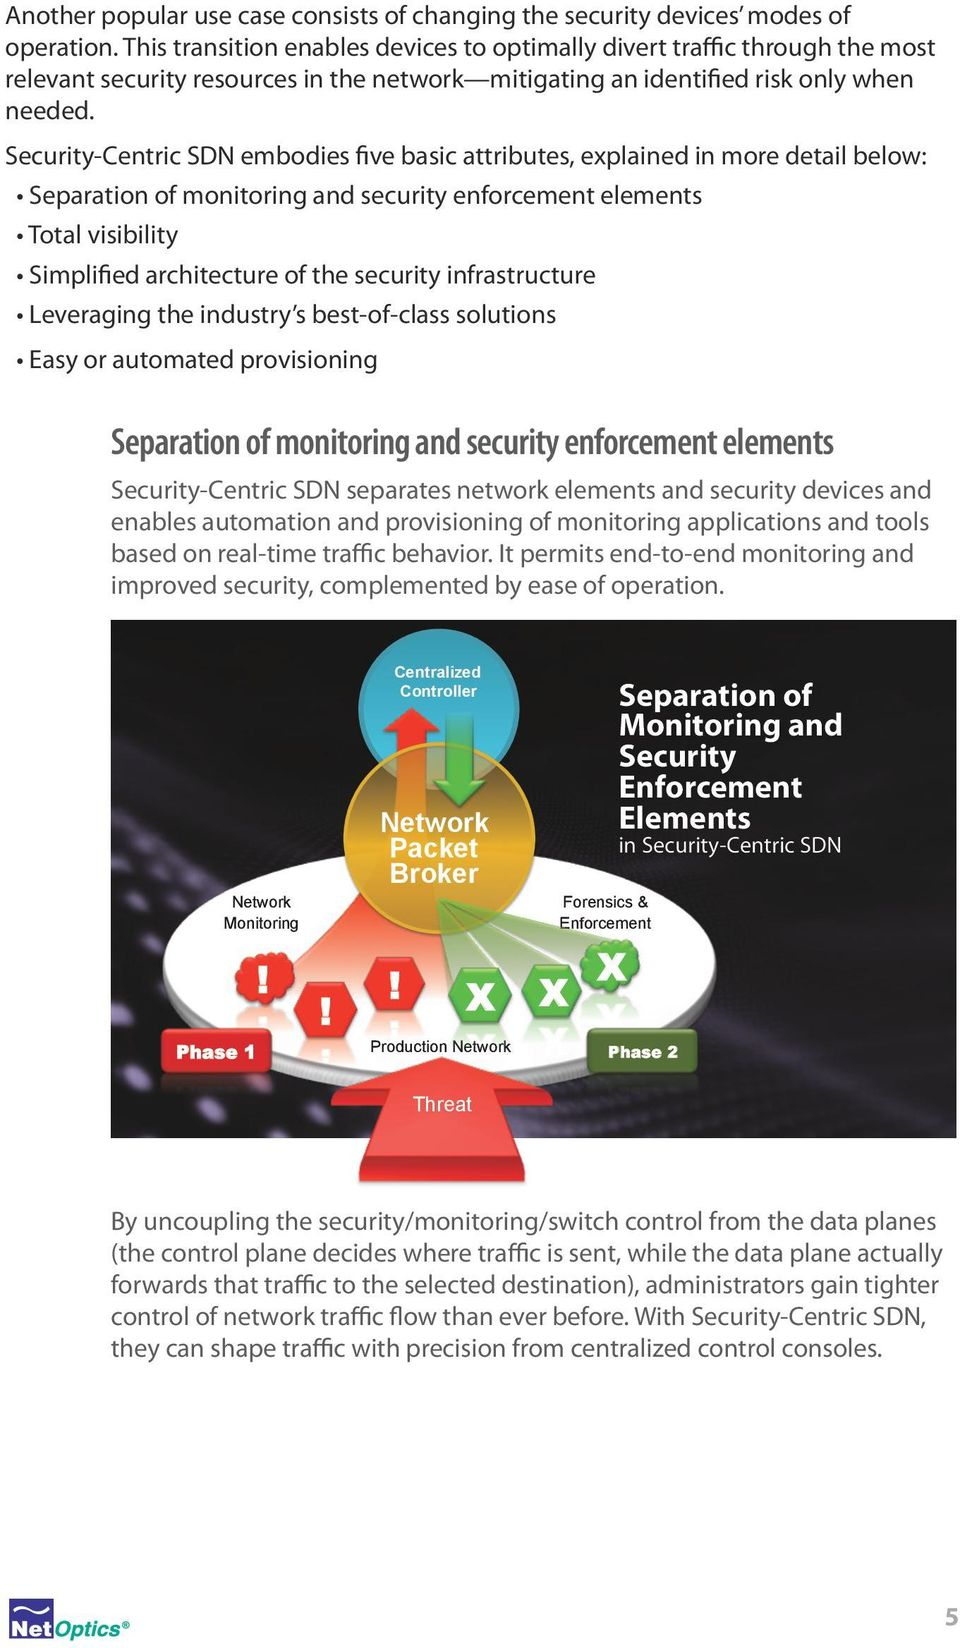 Security-Centric SDN embodies five basic attributes, explained in more detail below: Separation of monitoring and security enforcement elements Total visibility Simplified architecture of the